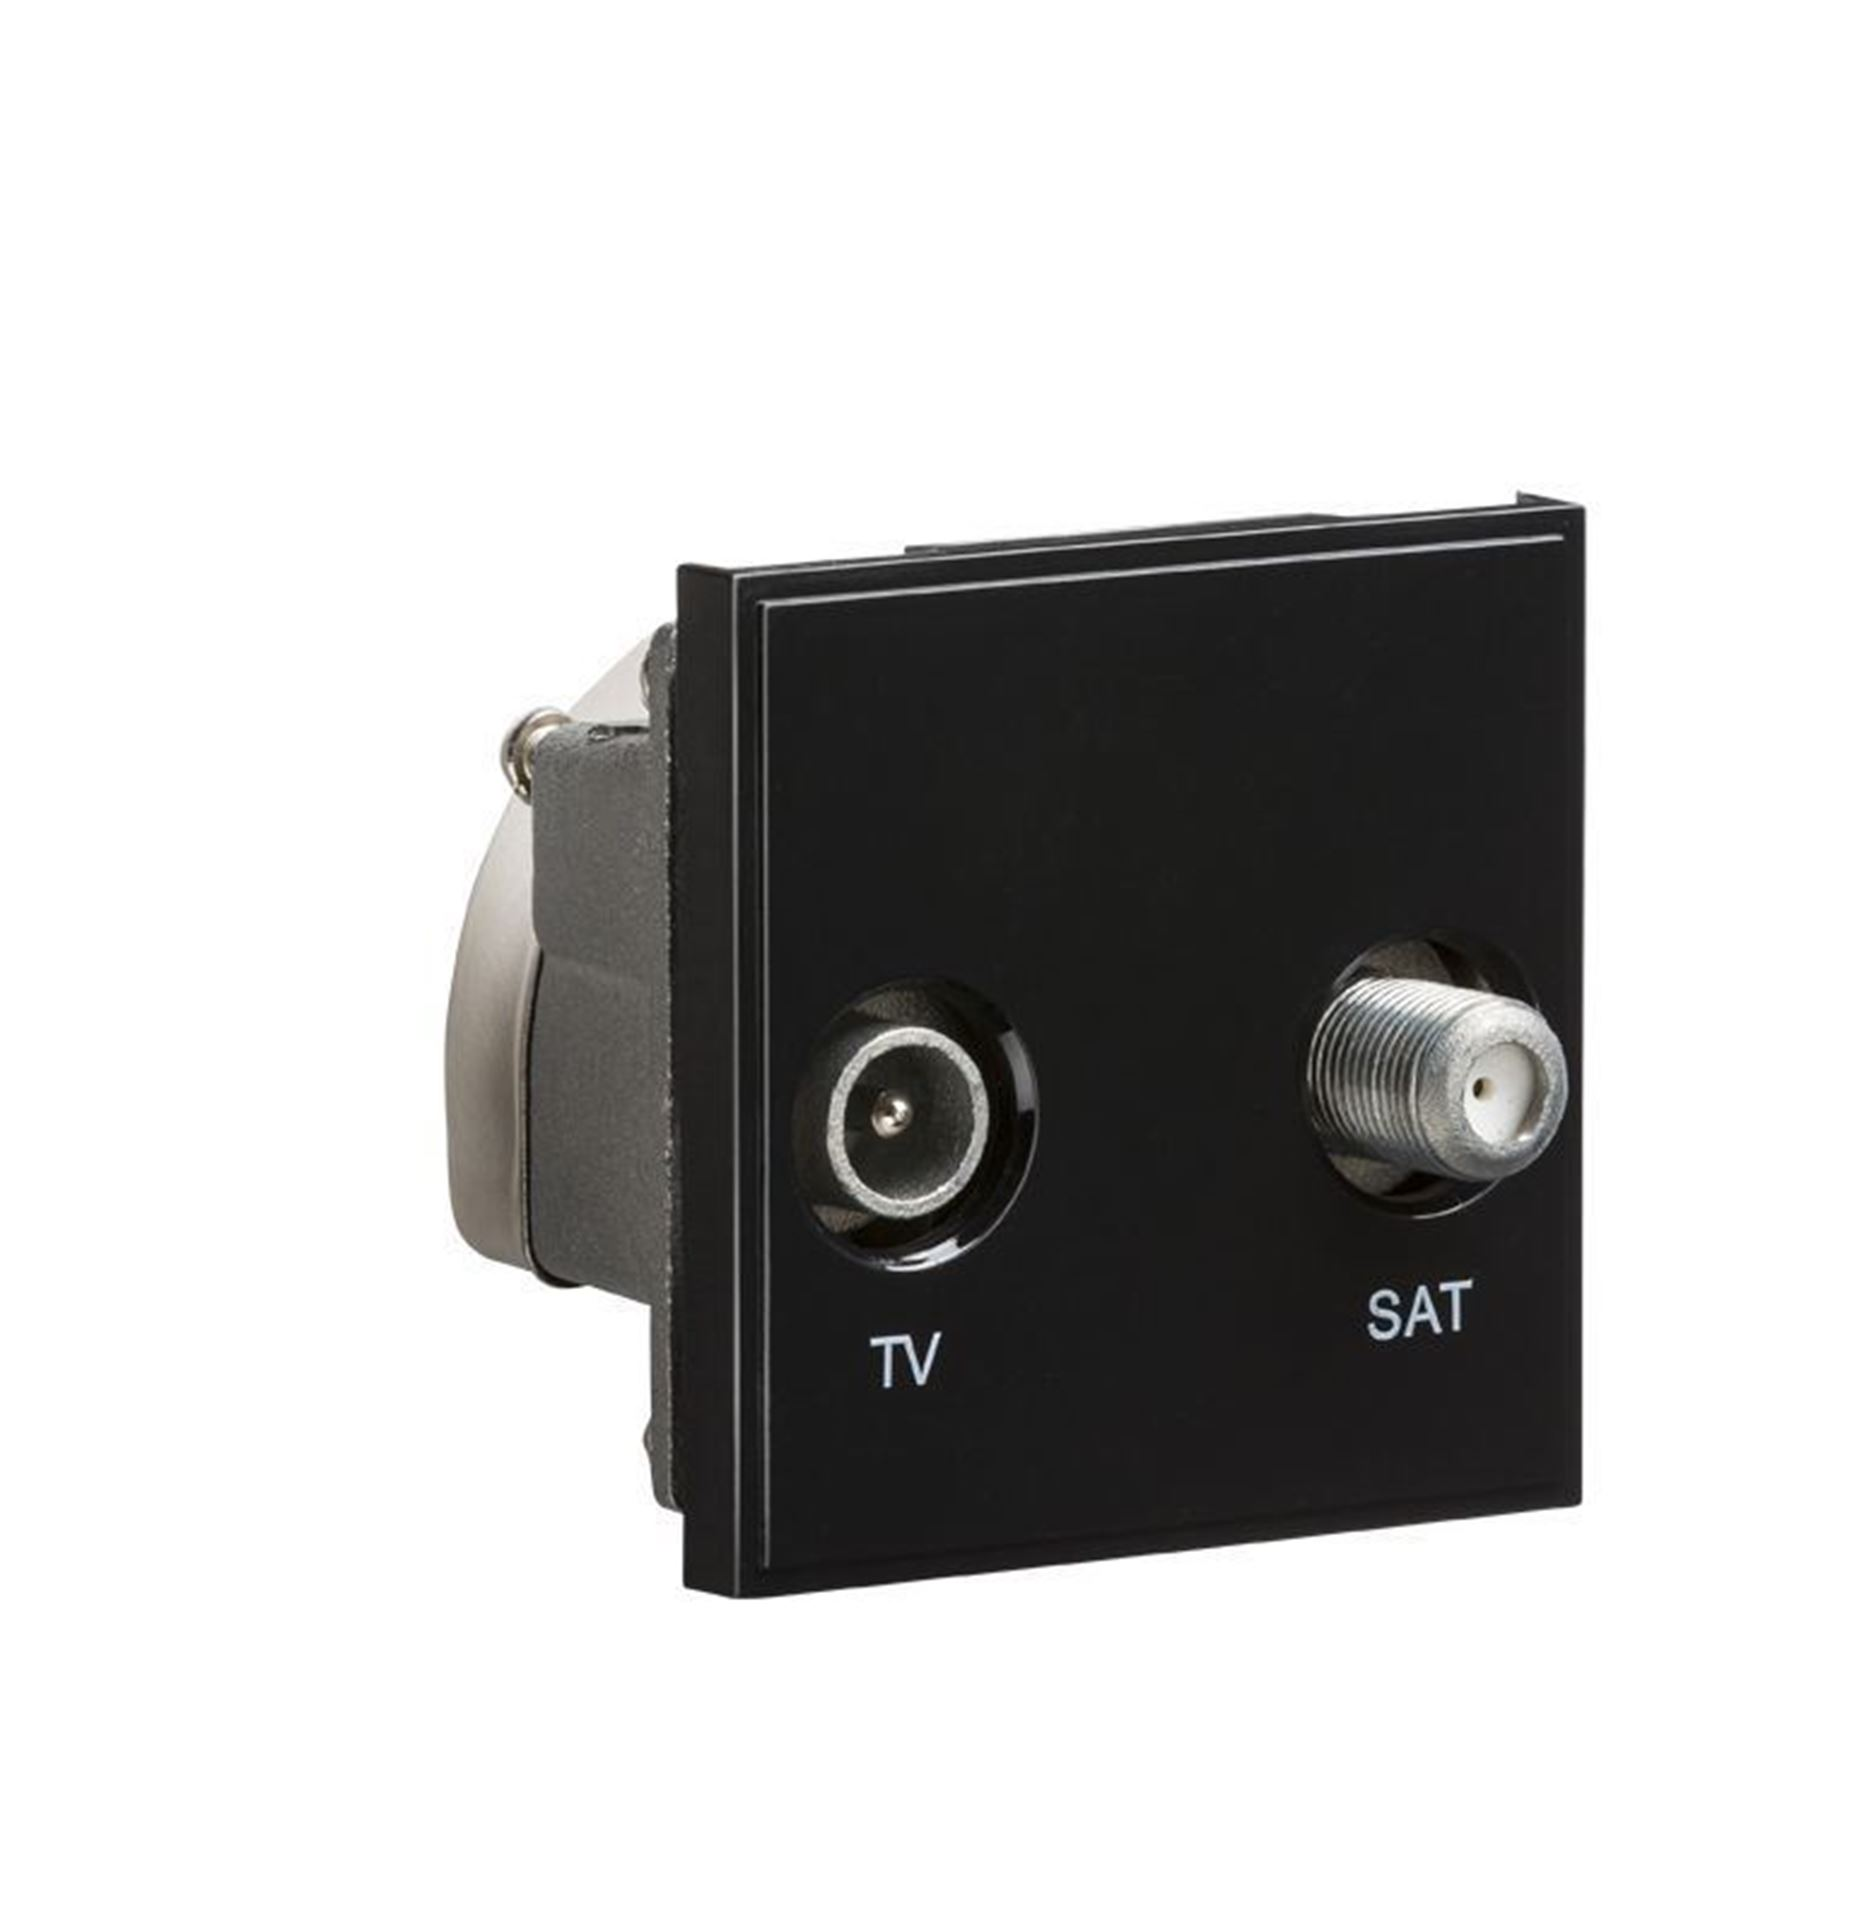 Diplexed TV /SAT TV Outlet Module 50 x 50mm - Black NETDISATBK